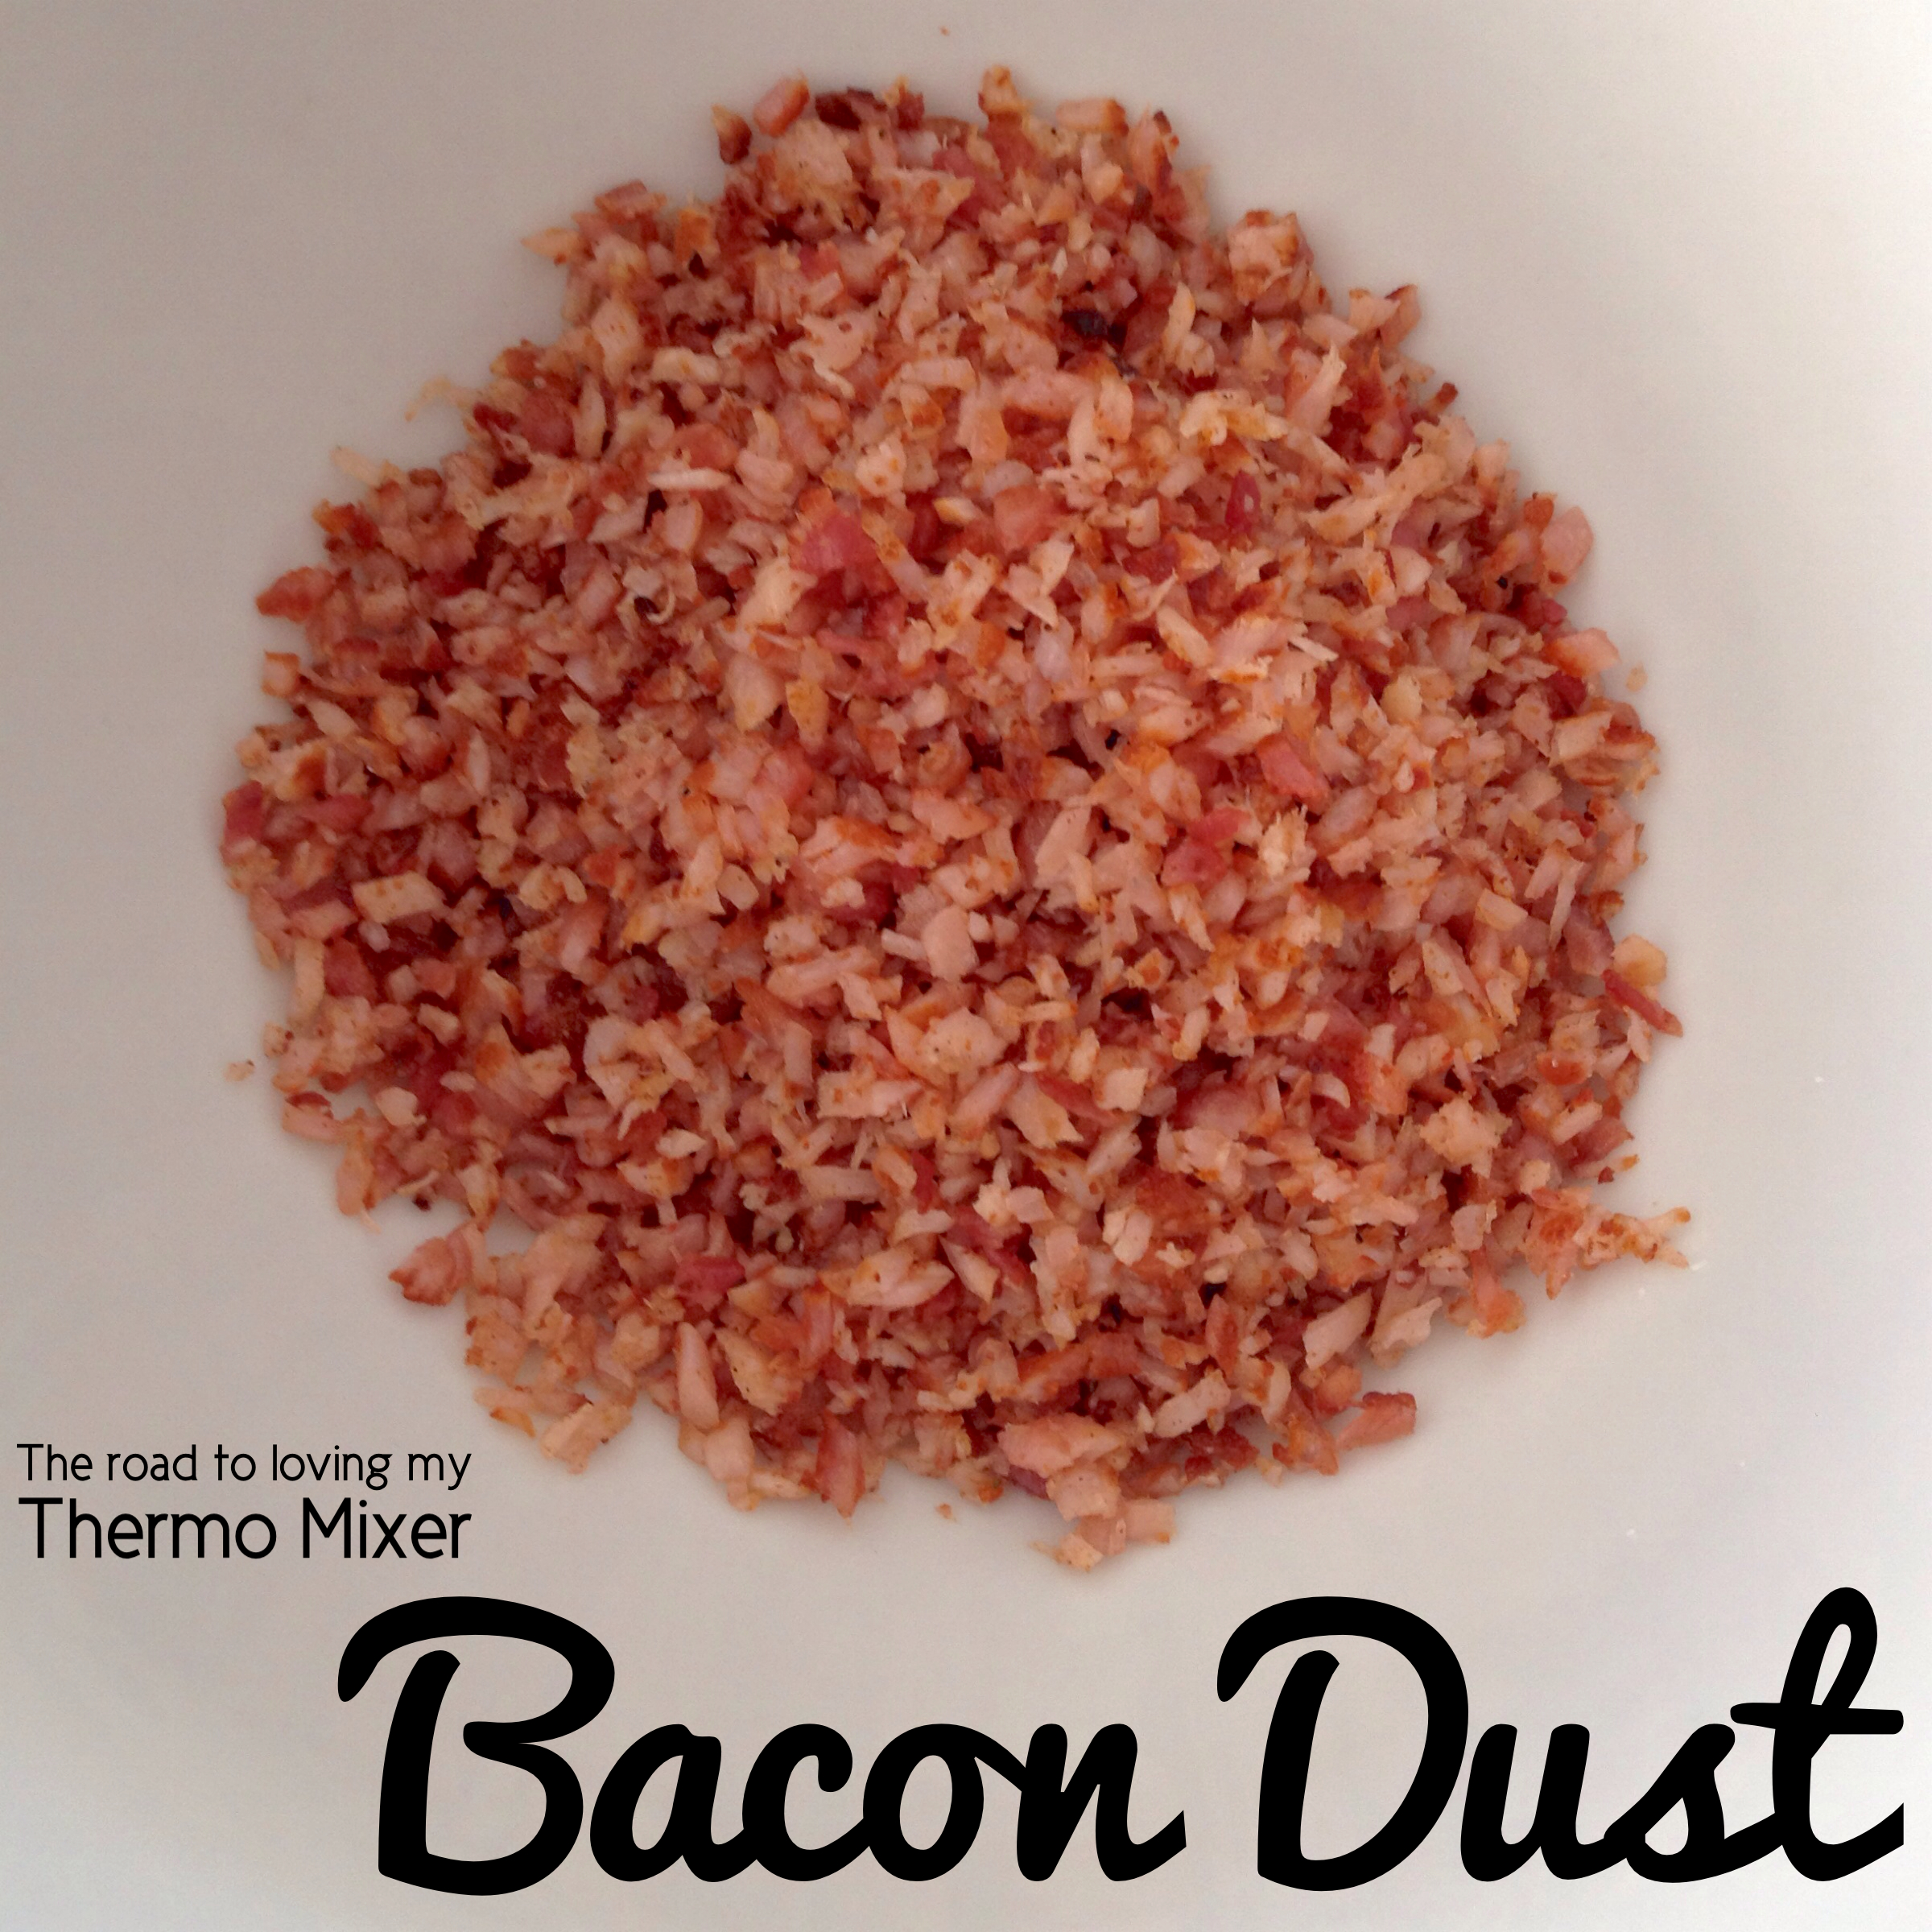 Bacon Dust - The Road to Loving My Thermo Mixer